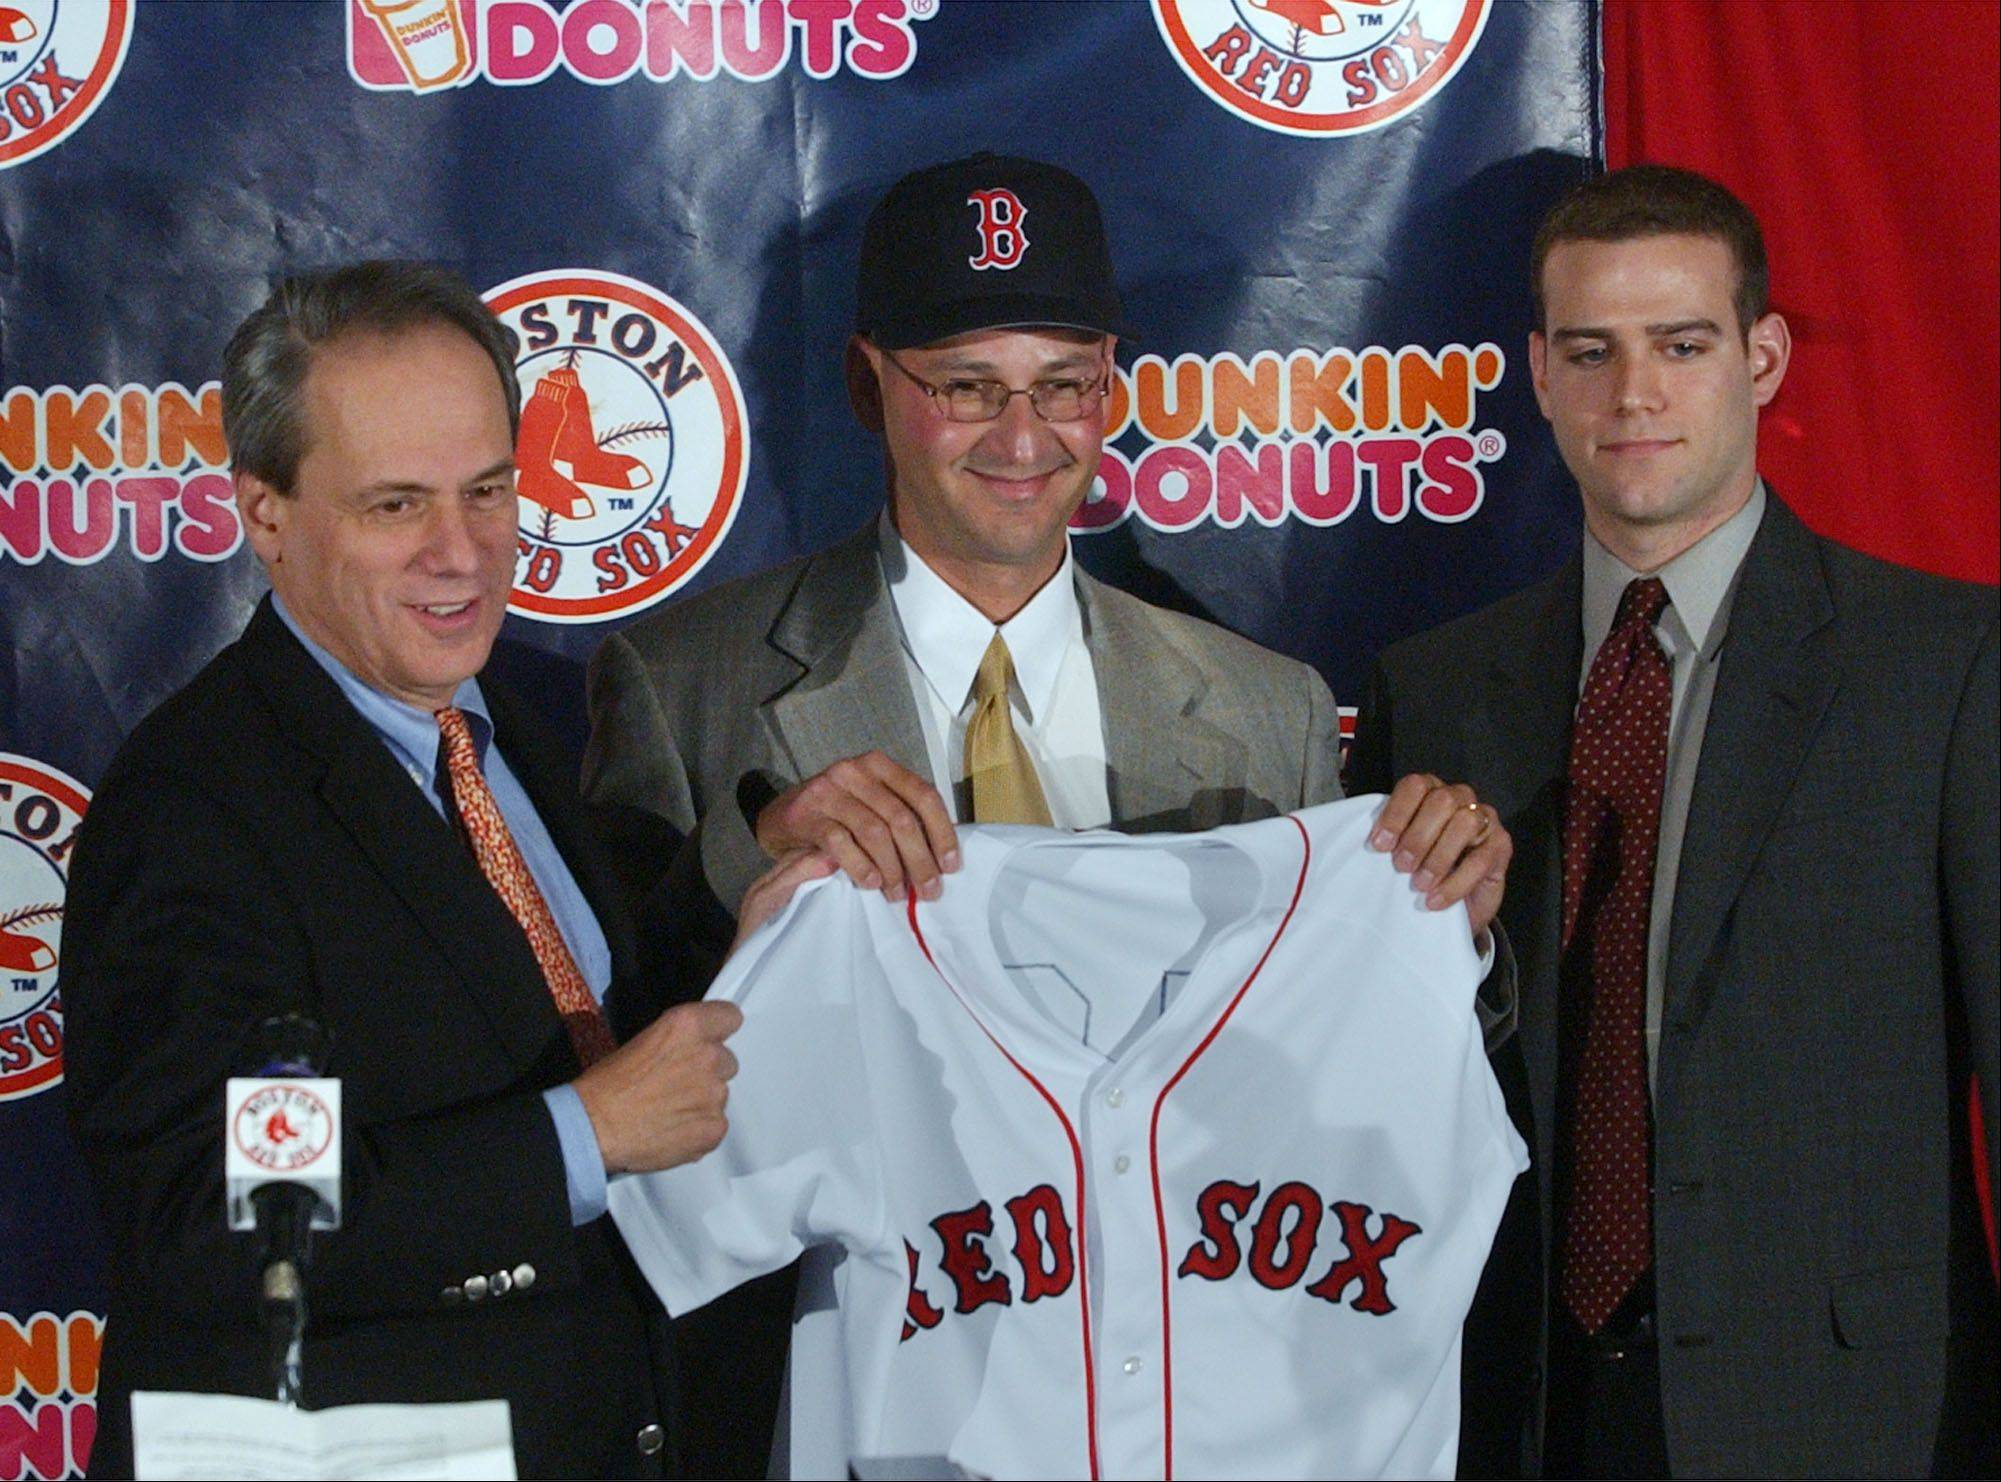 Former Philadelphia Phillies manager Terry Francona, center, shows his new Boston Red Sox uniform during a news conference at Fenway Park in Boston, Thursday, Dec. 4, 2003 with Red Sox President Larry Lucchino, left, and General Manager Theo Epstein, right. Boston Red Sox named Francona their 44th manager.